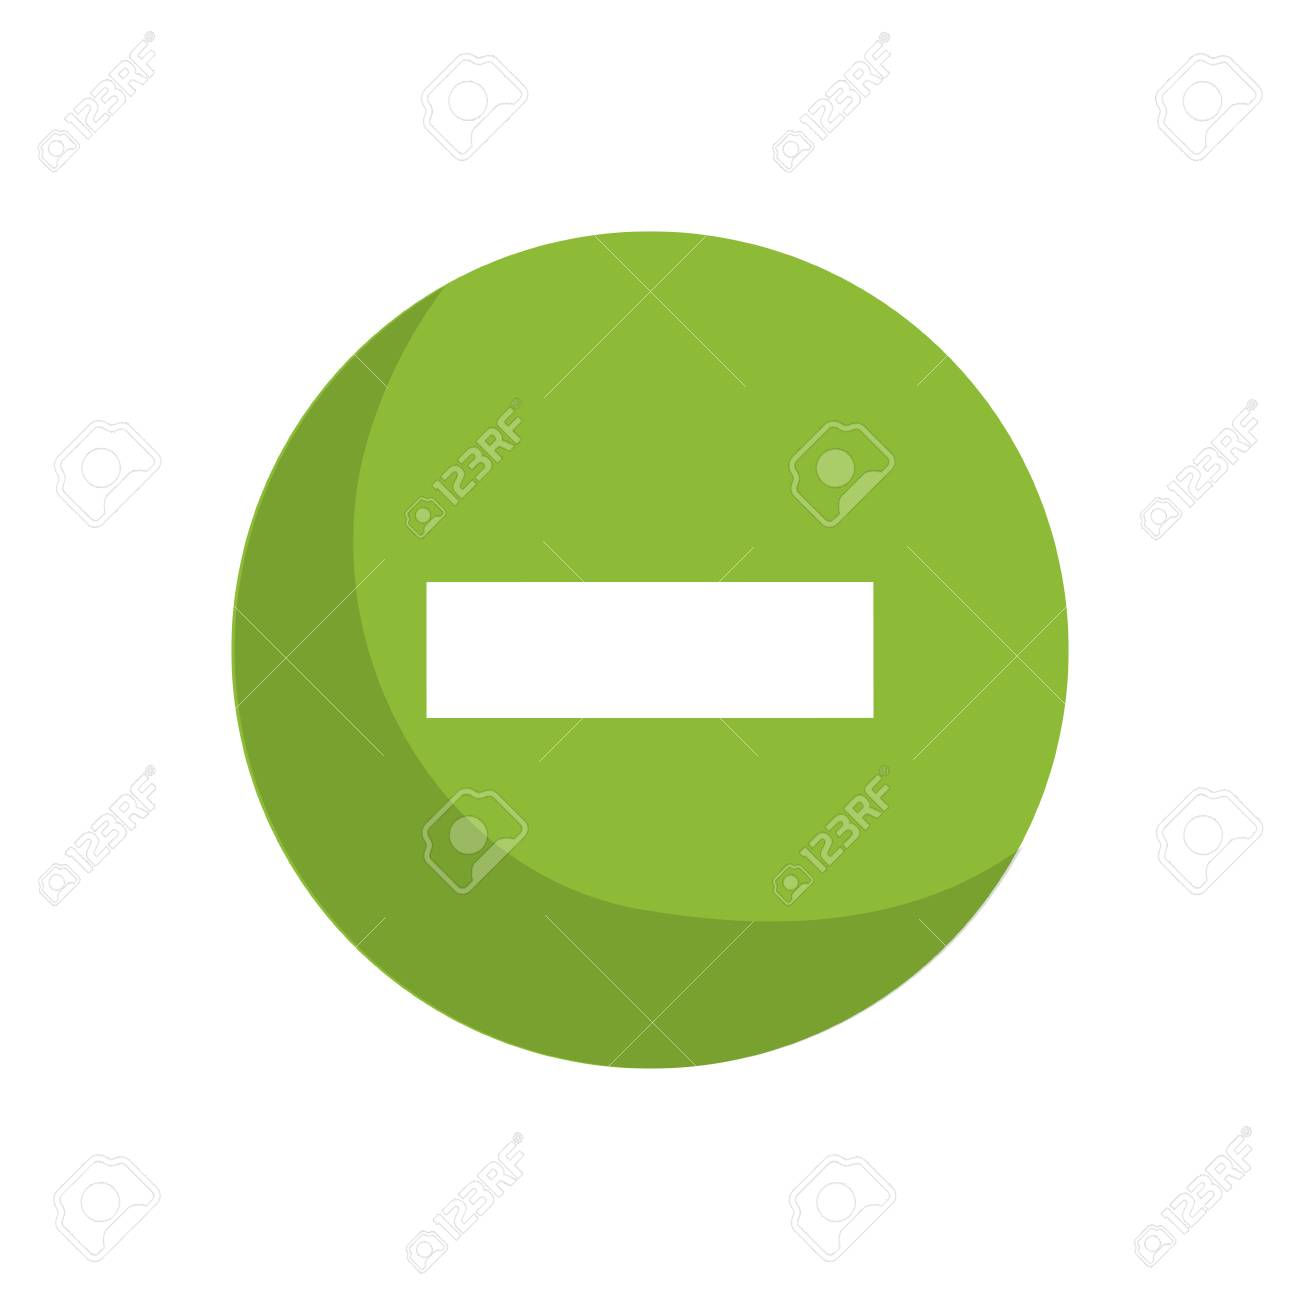 Subtraction Button Sign Icon Vector Illustration Graphic Design ...